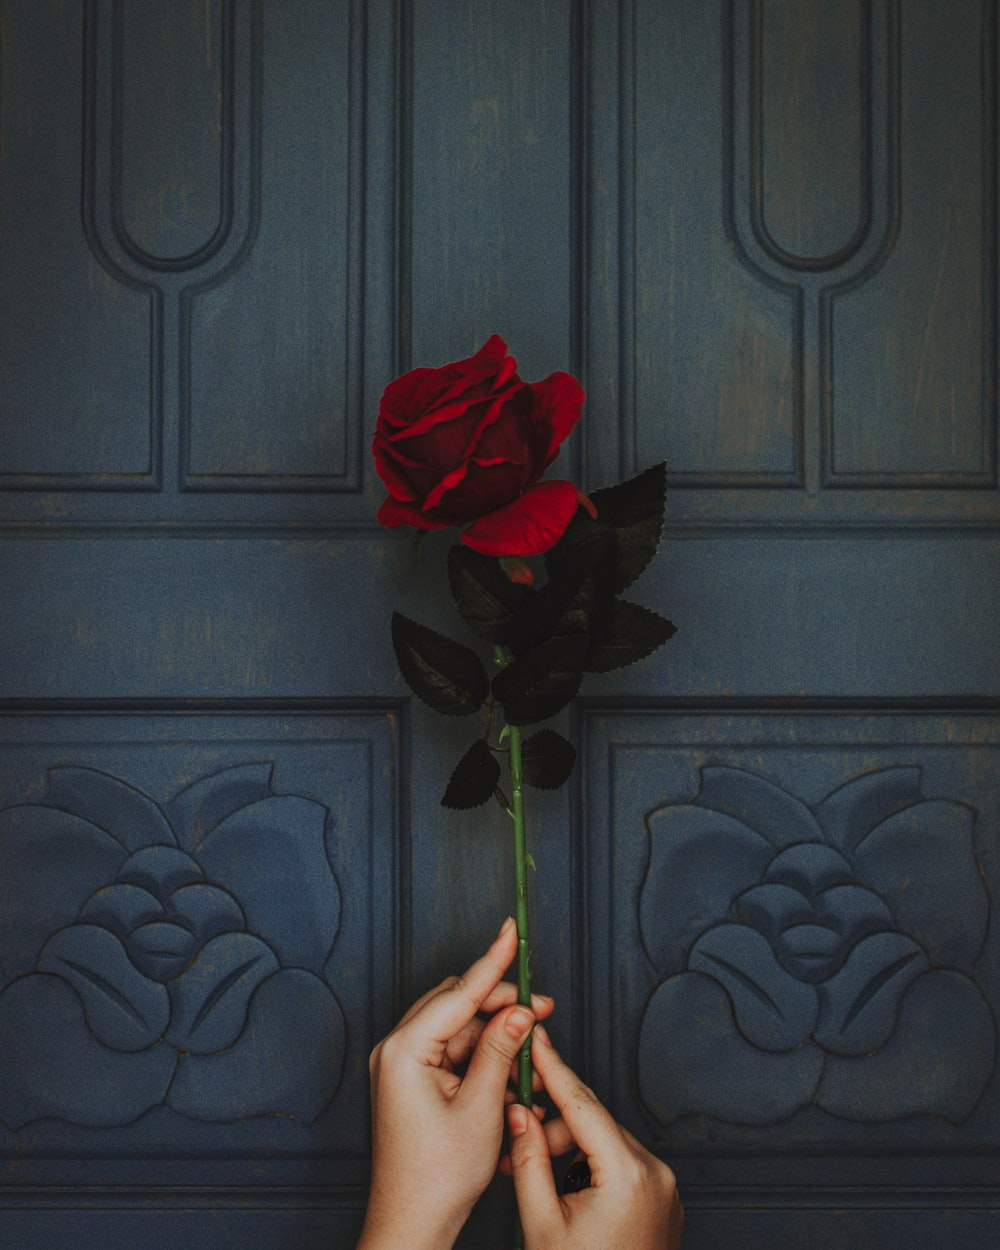 Red Rose Images Hq Download Free Pictures On Unsplash